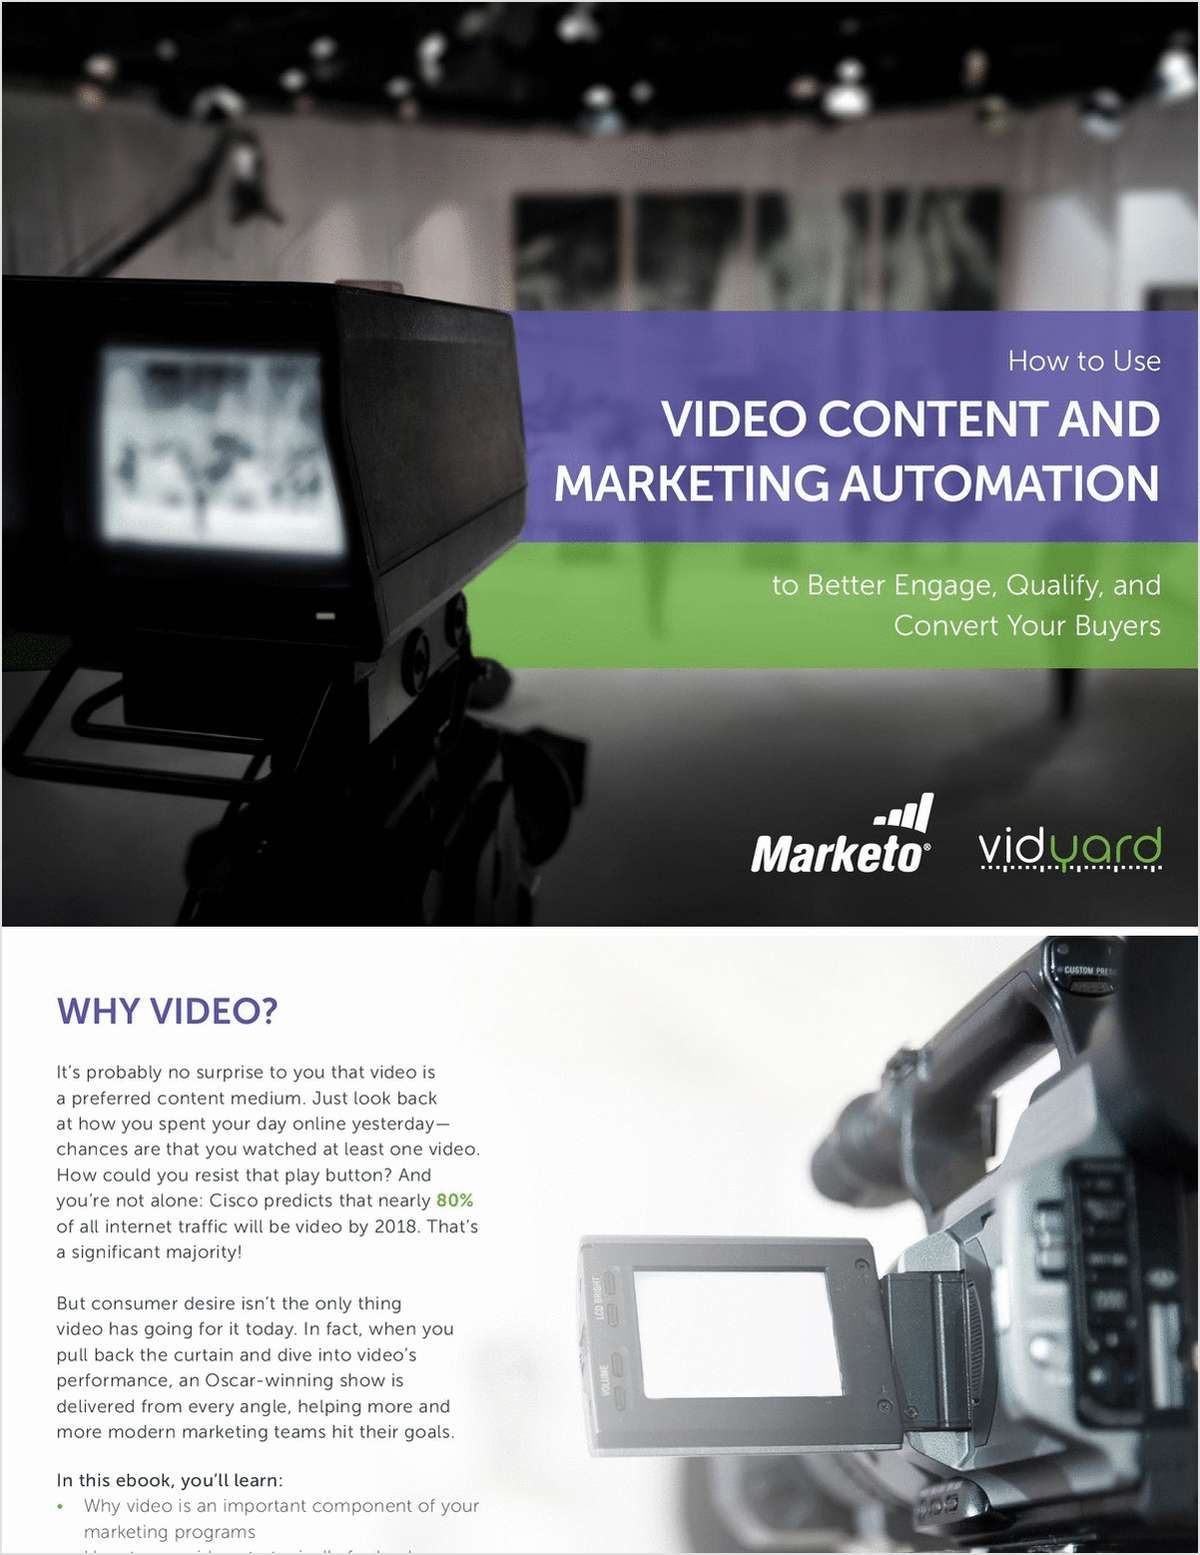 Marketo & Vidyard Present: How to Use Video Content and Marketing Automation to Better Engage, Qualify, and Convert Your Buyers